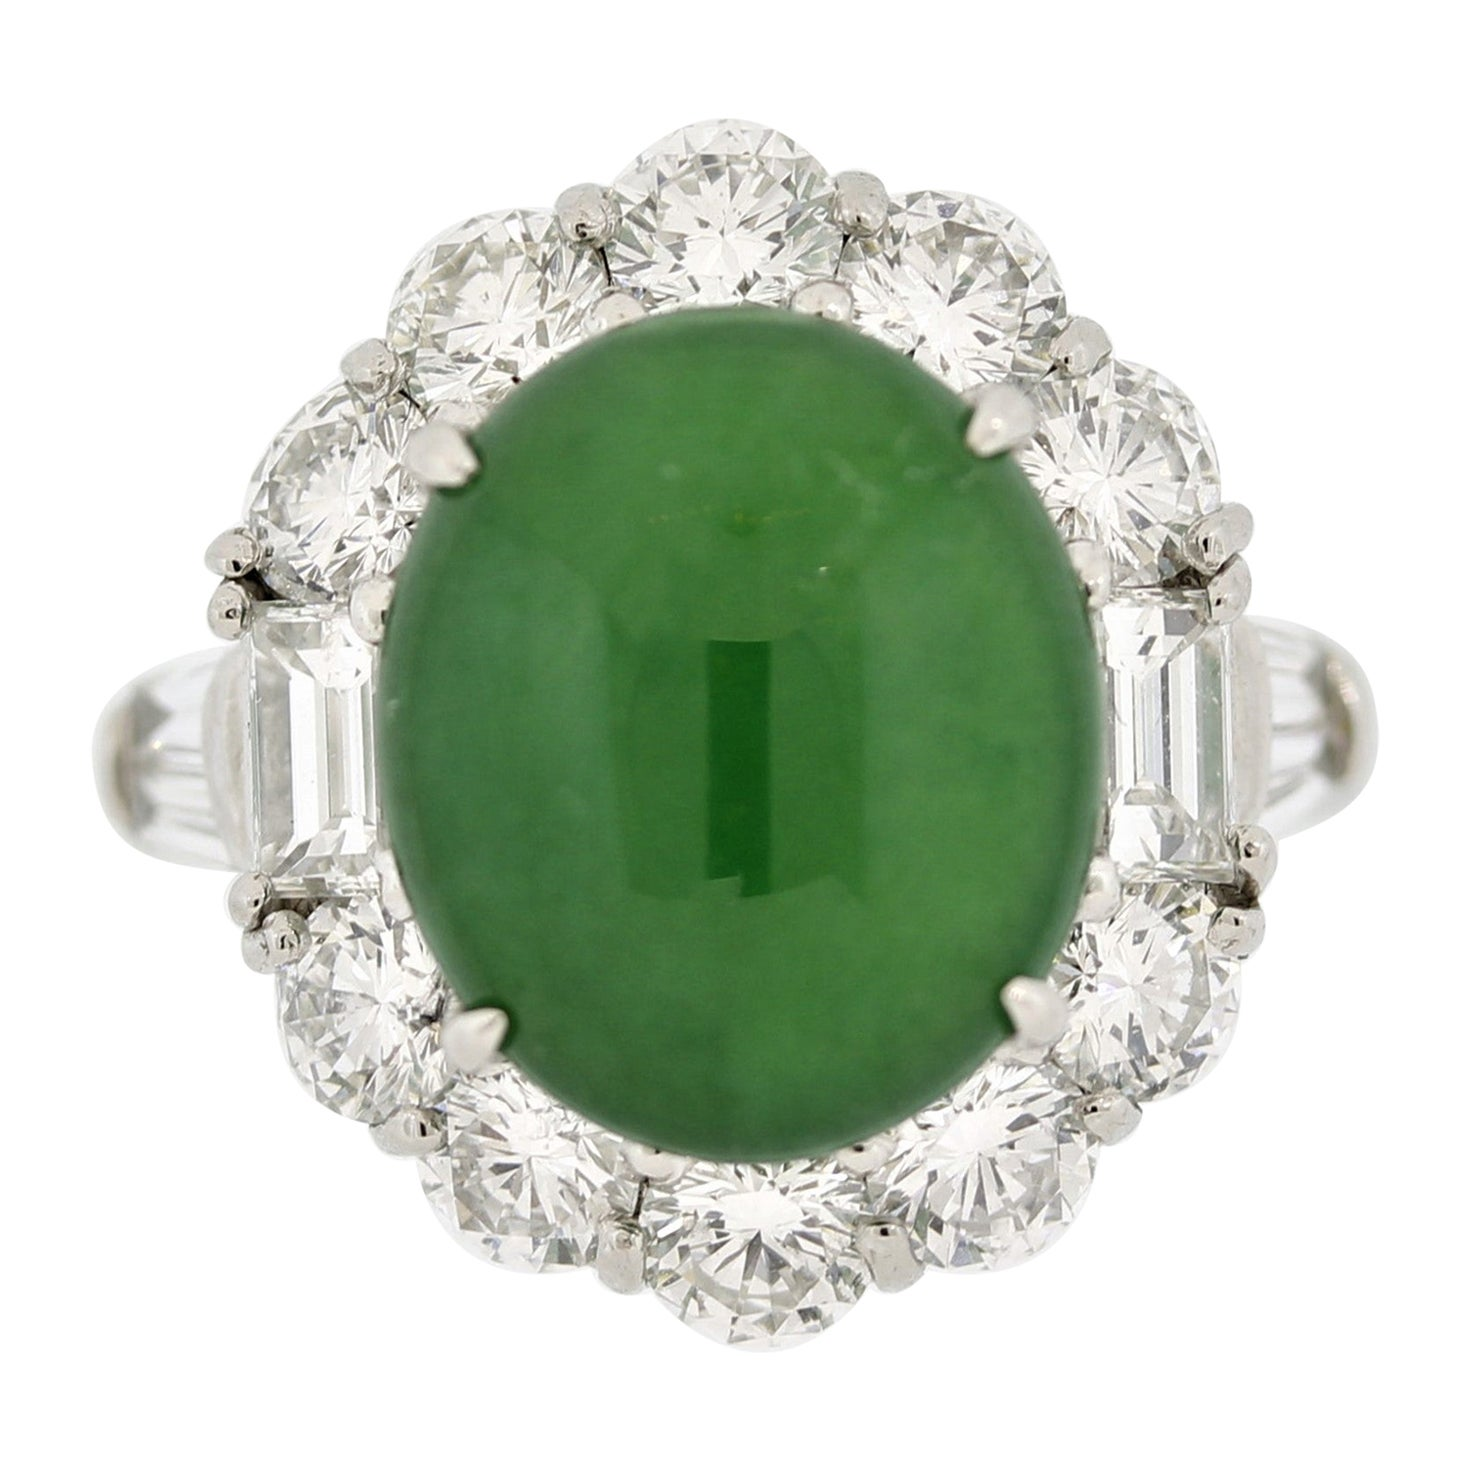 Fine Jadeite Jade Diamond Platinum Ring, GIA Certified